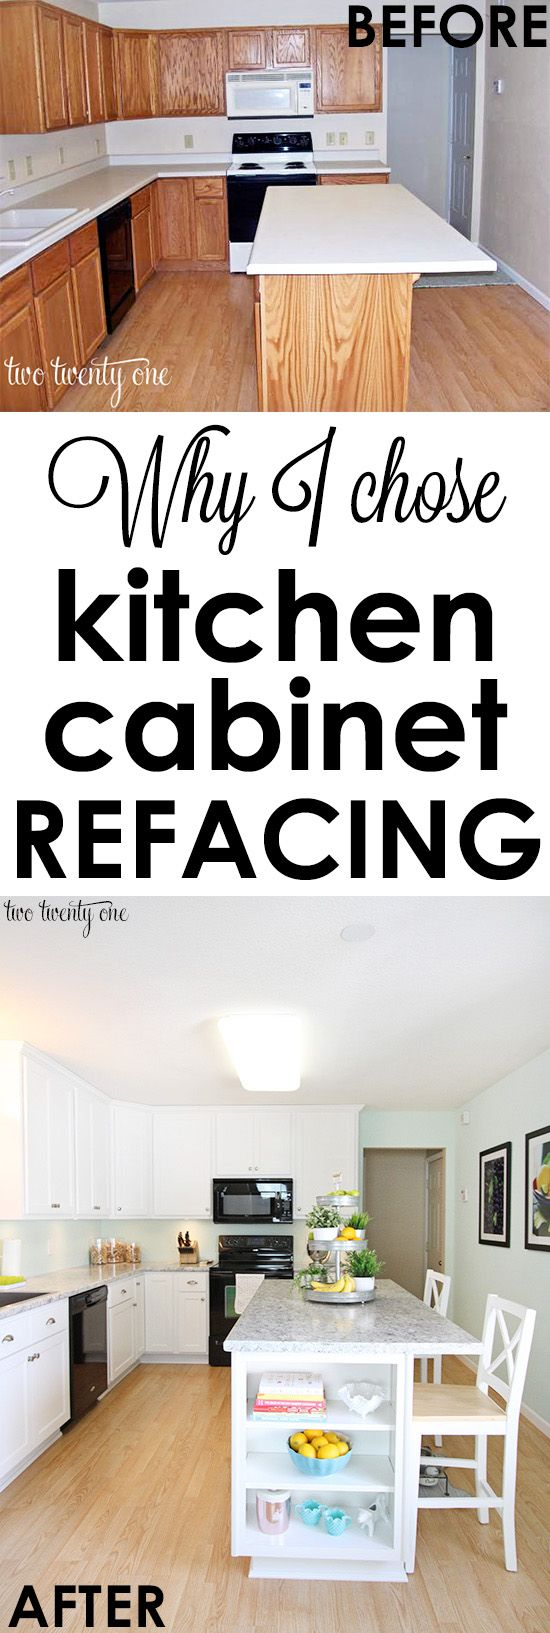 kitchen cabinet makeover reveal - Kitchen Cabinet Refacing Ideas